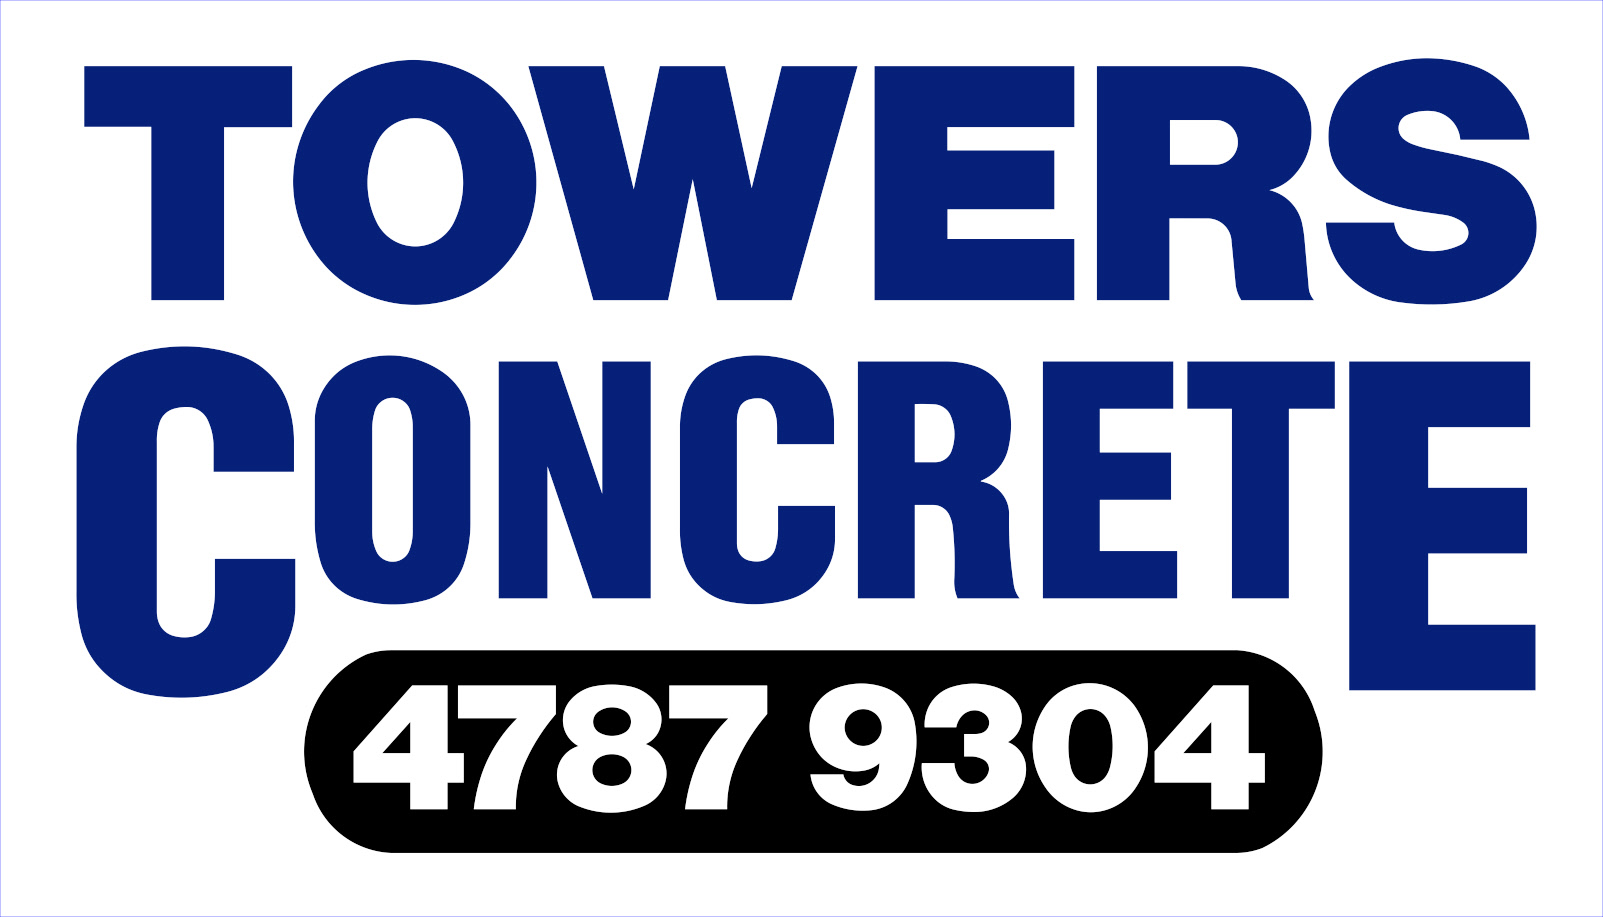 TOWERS CONCRETE LOGO.jpg